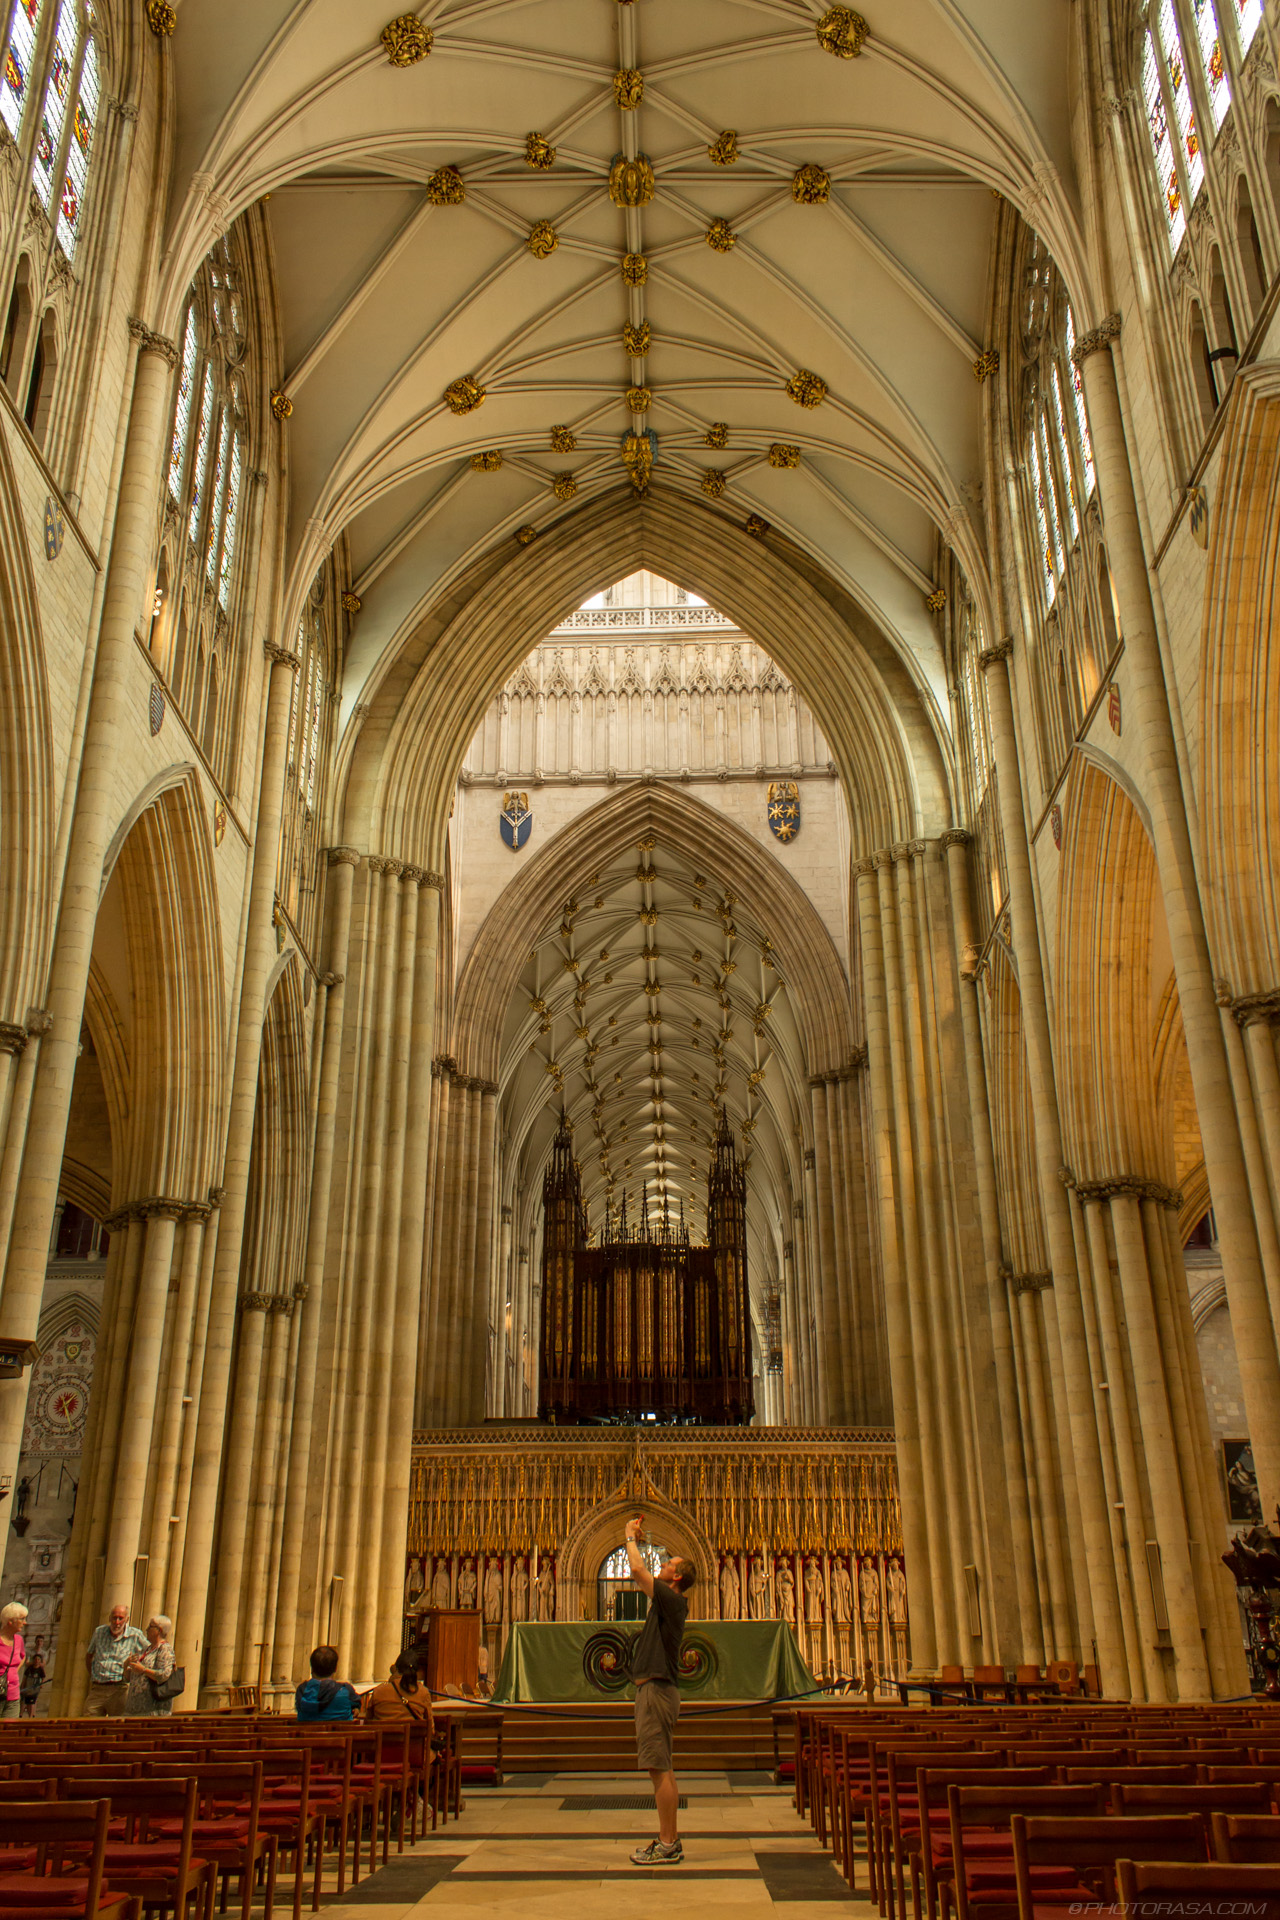 http://photorasa.com/yorkminster-cathedral/in-the-nave-looking-towards-the-choir/